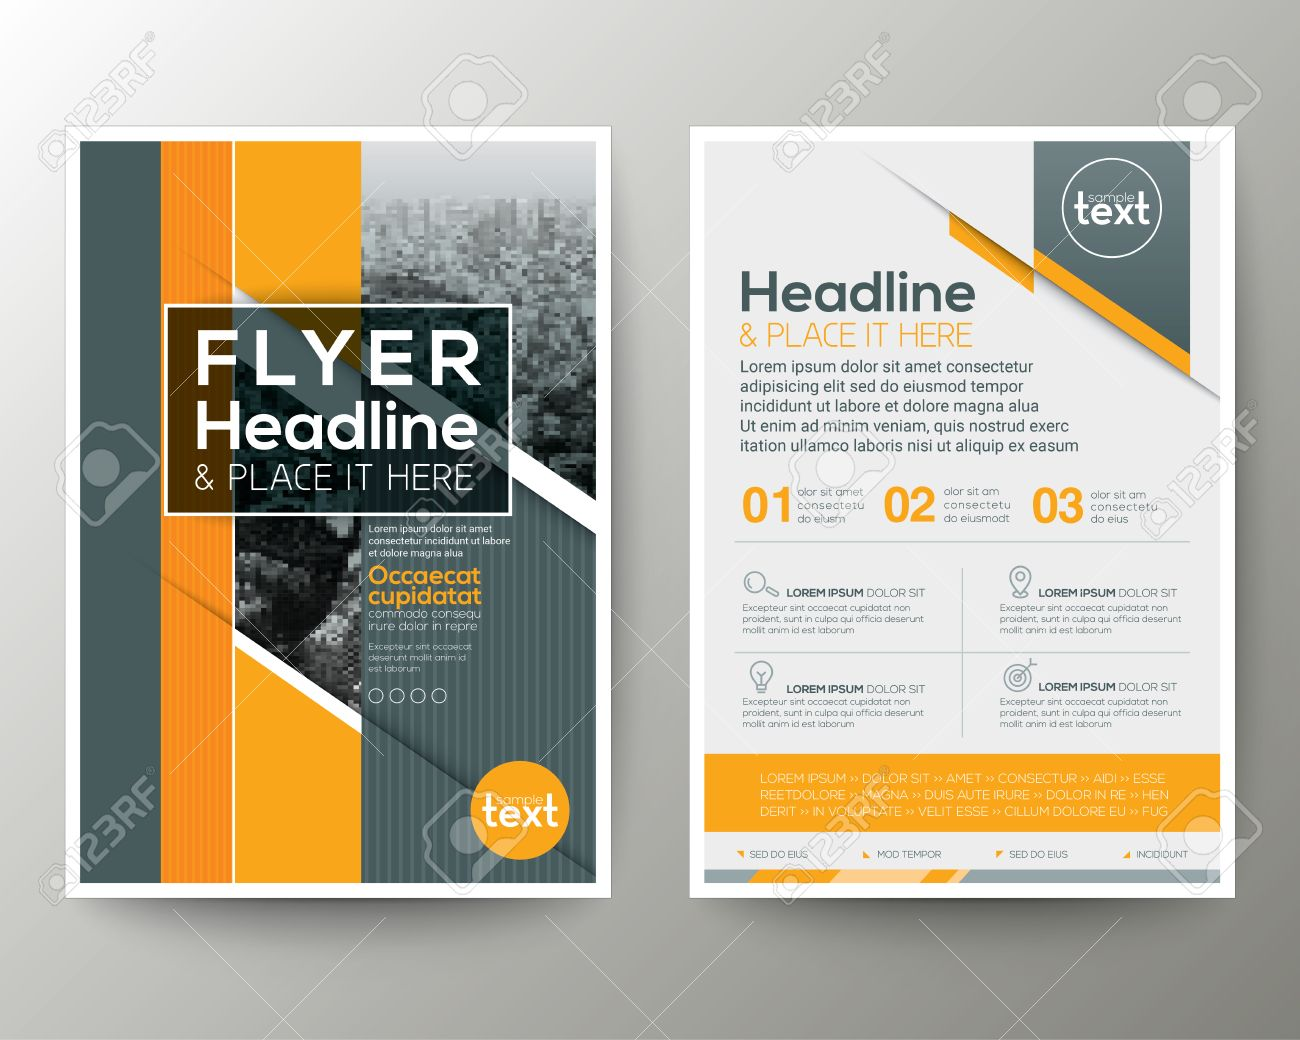 Grey and Orange Geometric background Poster Brochure Flyer leaflet design Layout vector template in A4 size - 58831029